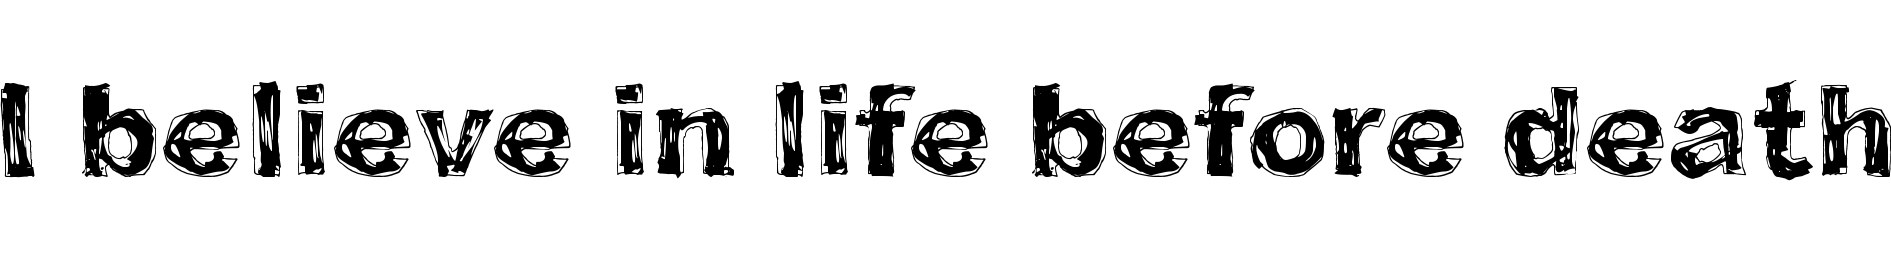 I believe in life before death